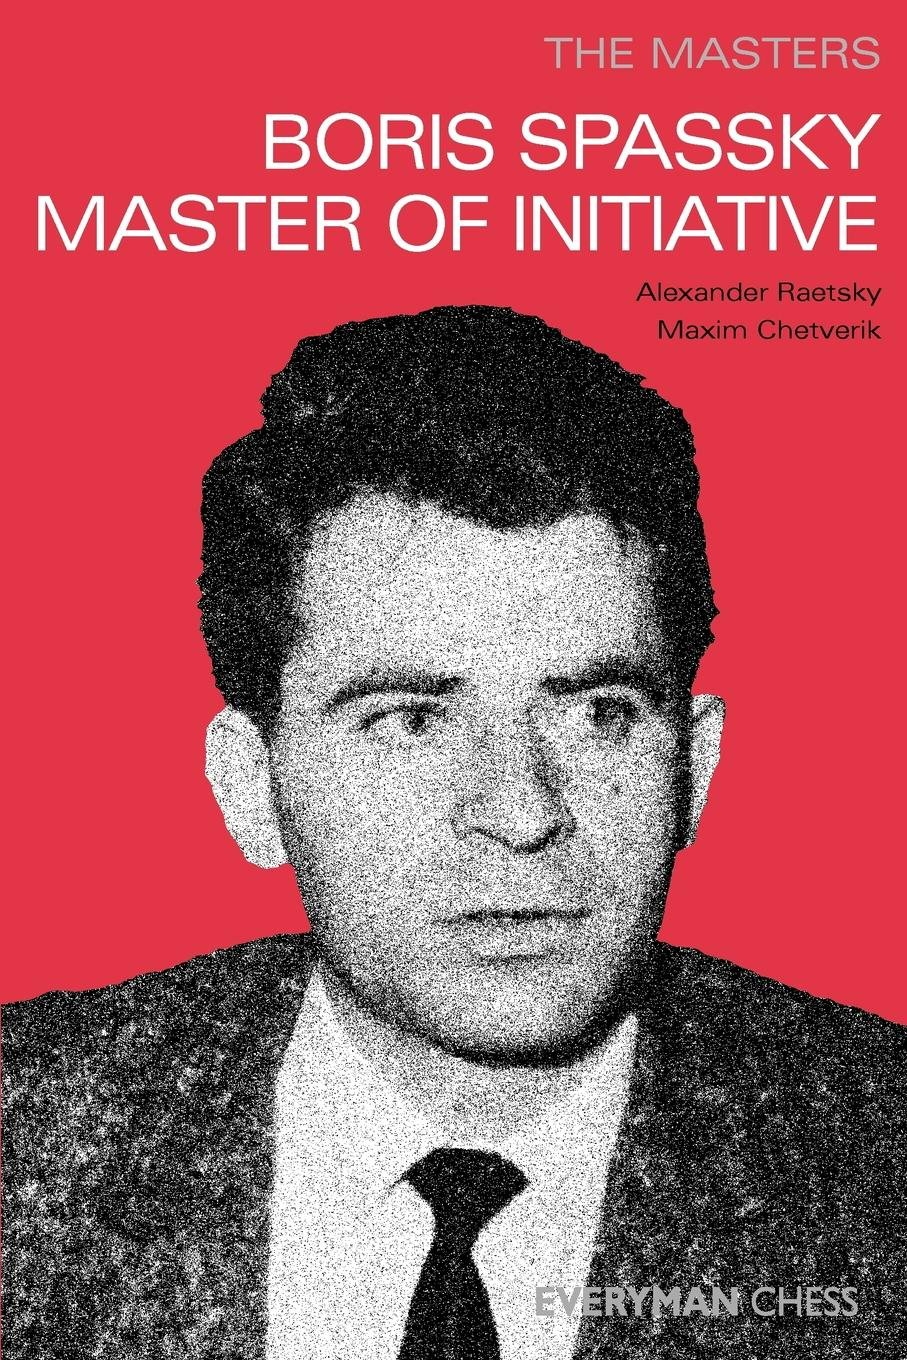 Read Online Masters: Boris Spassky Master of Initiative (Masters (Everyman Chess)) ebook